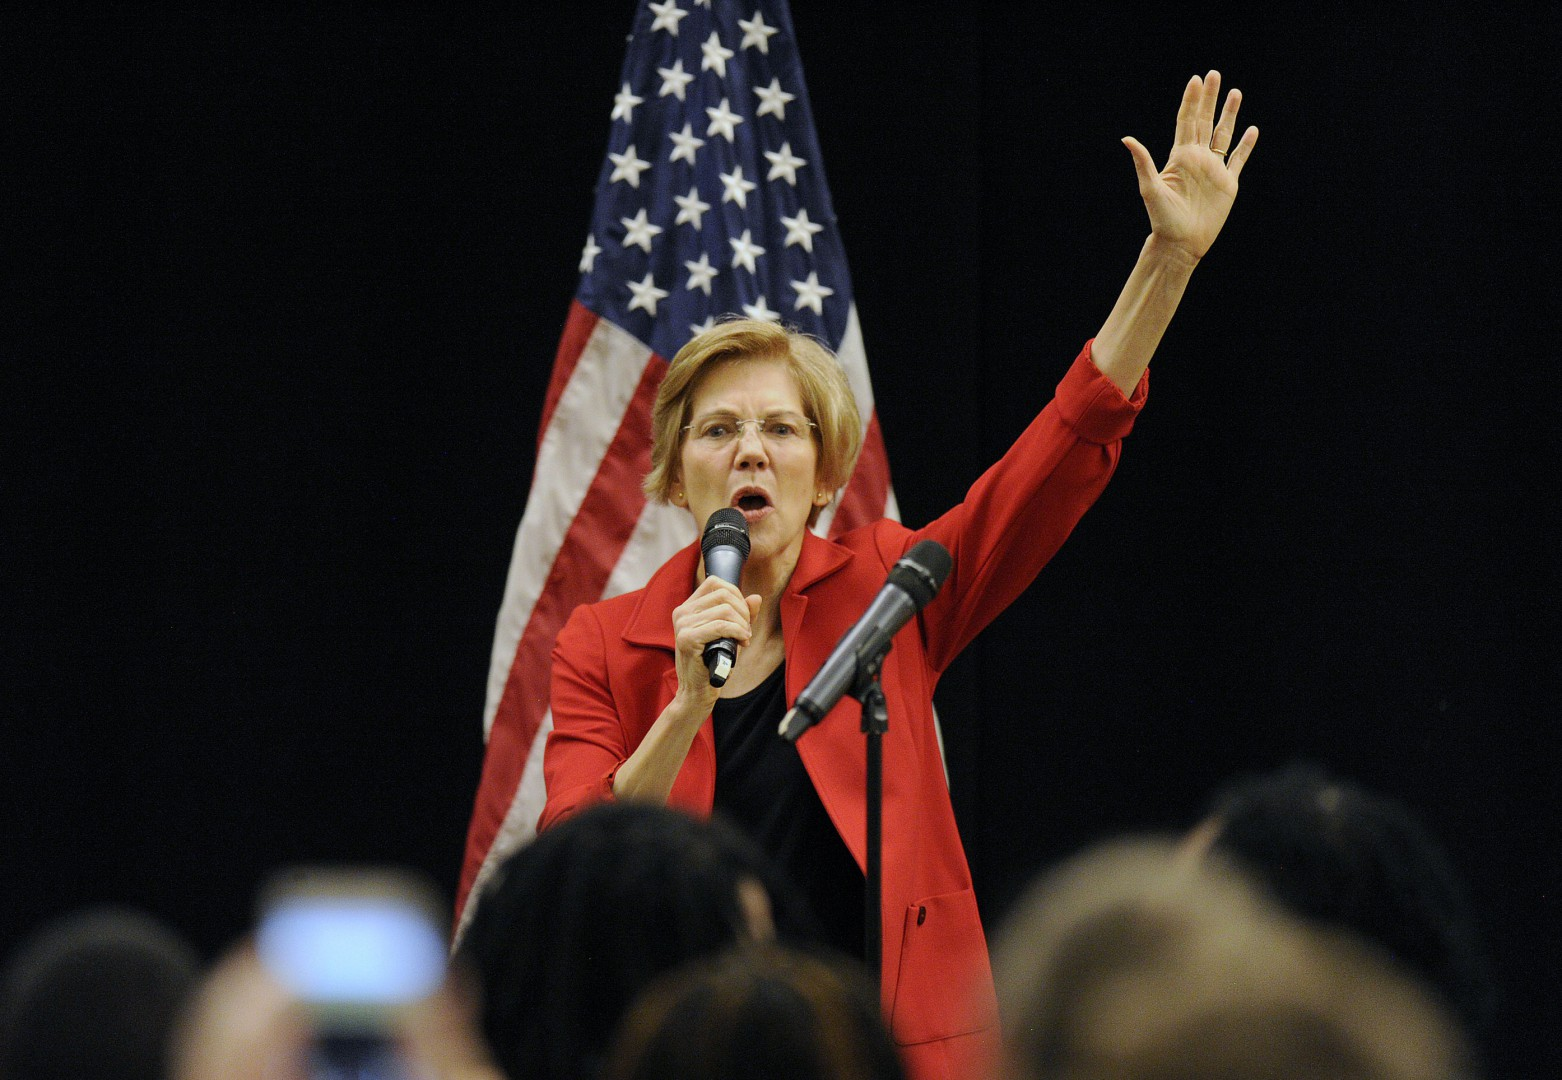 (FILES) In this file photo taken on October 13, 2018 US Senator Elizabeth Warren (D-MA) addresses a town hall meeting in Roxbury, Massachusetts. - Democratic Senator Elizabeth Warren -- a fierce critic of Donald Trump -- on December 31, 2018 took a major step towards a likely run for president, seeking to upset the incumbent Republican in 2020. The 69-year-old Warren, who has represented Massachusetts in the Senate since 2013, is a progressive Democrat. She said she was launching an exploratory committee for president, which would help her raise funds early in the campaign cycle. (Photo by Joseph PREZIOSO / AFP)